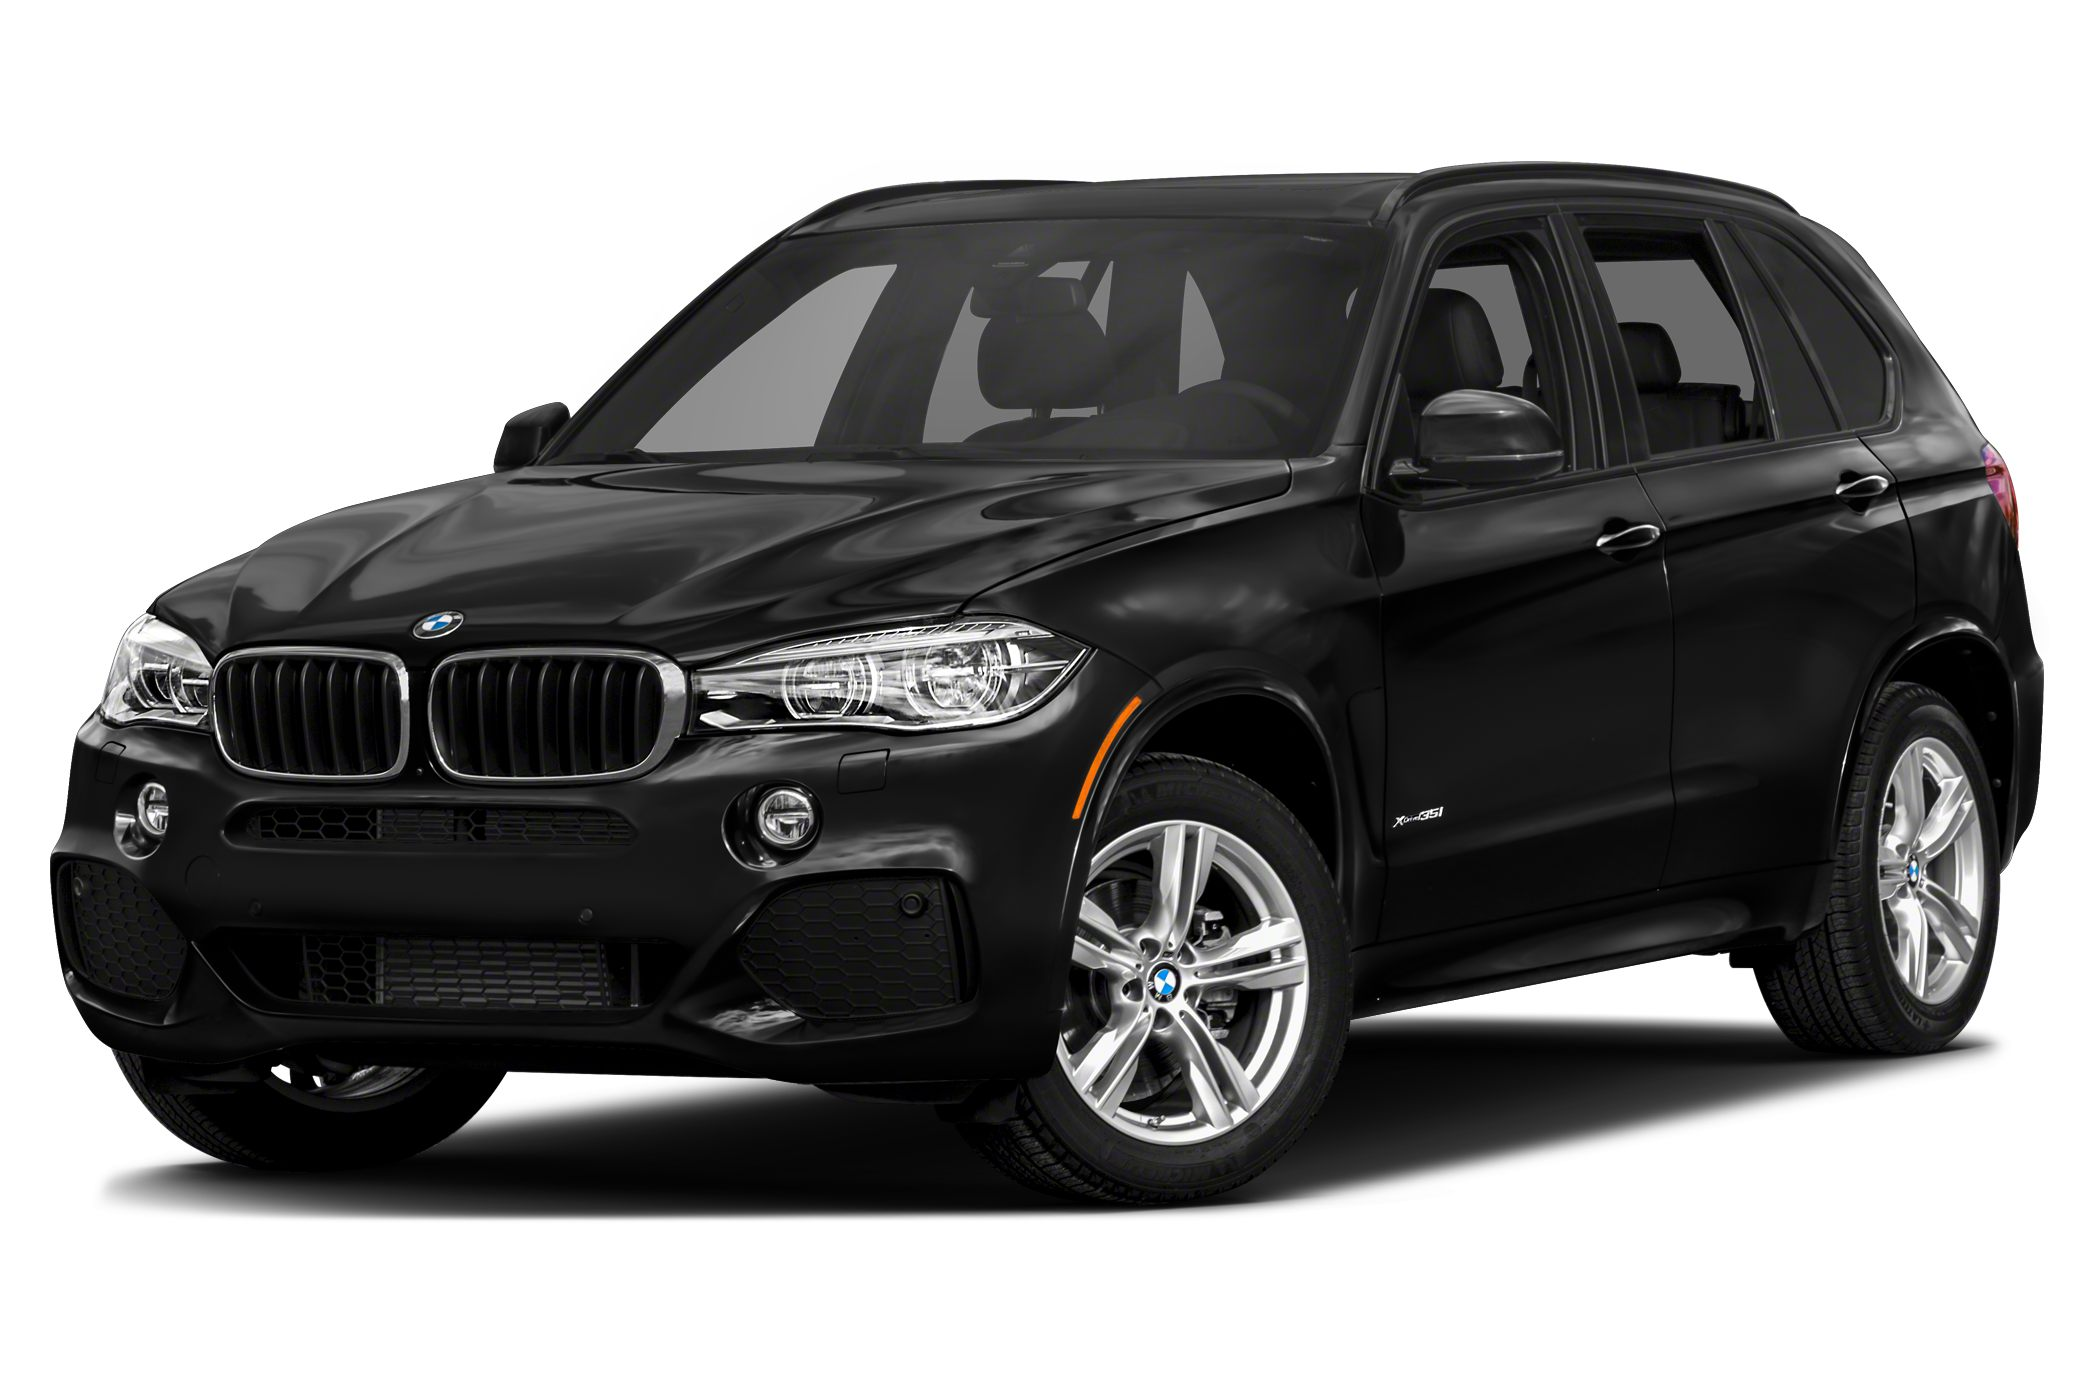 Used Cars Nyc Inspirational Cars for Sale at Nyc Motorcars In Freeport Ny